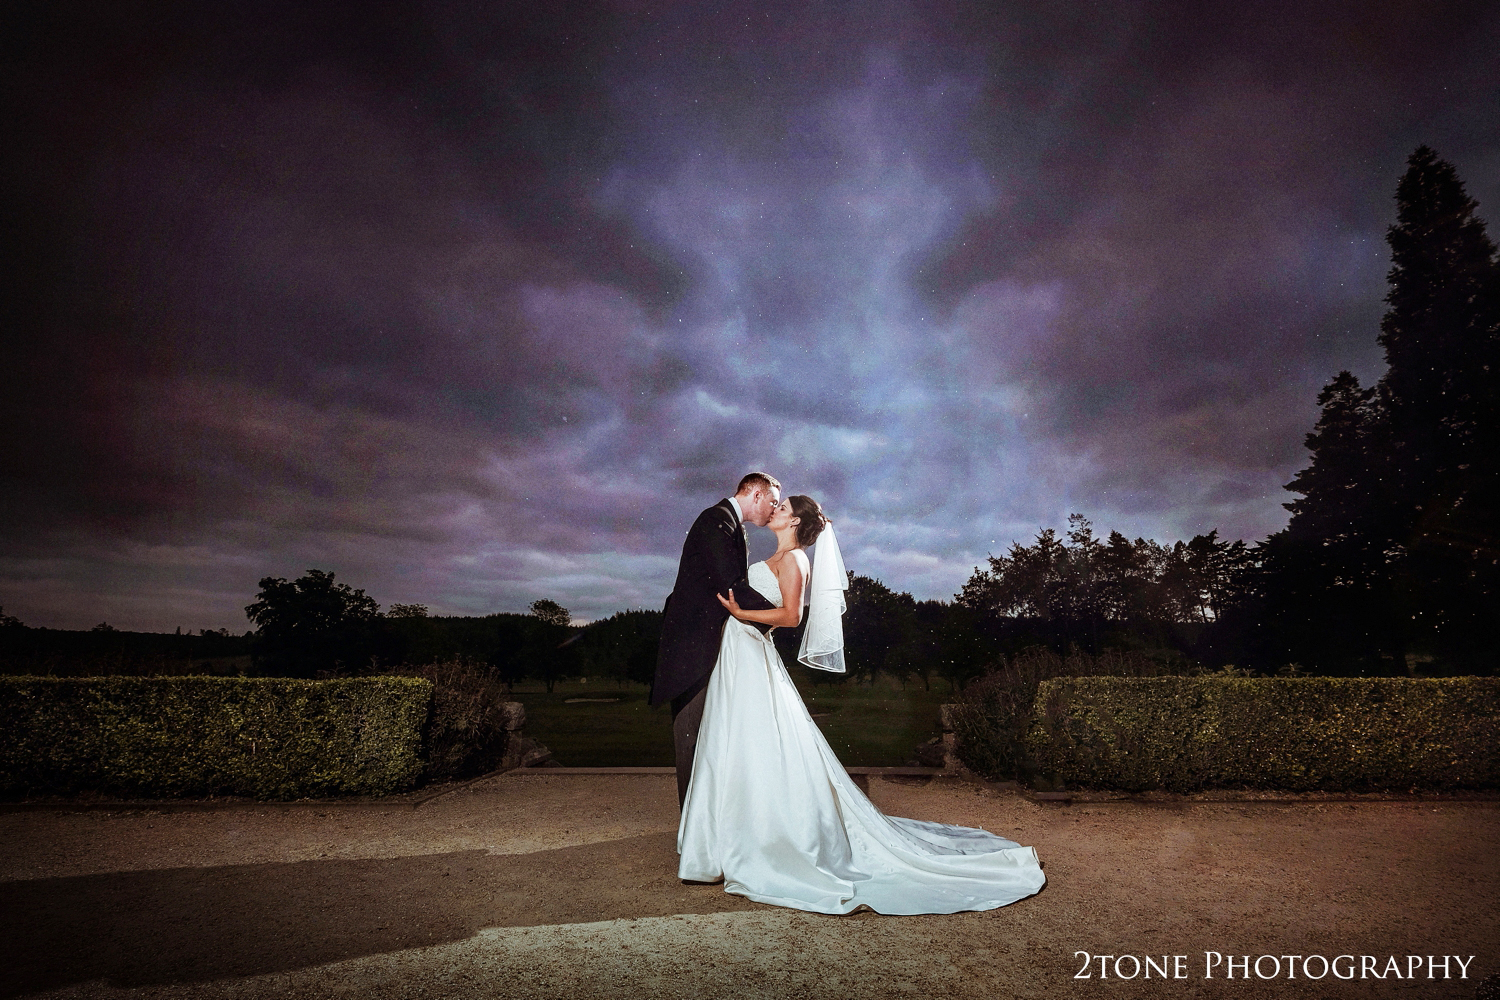 The lastshot of the day, a romantic photograph and a dramatic sky, what a perfect way to end the day.